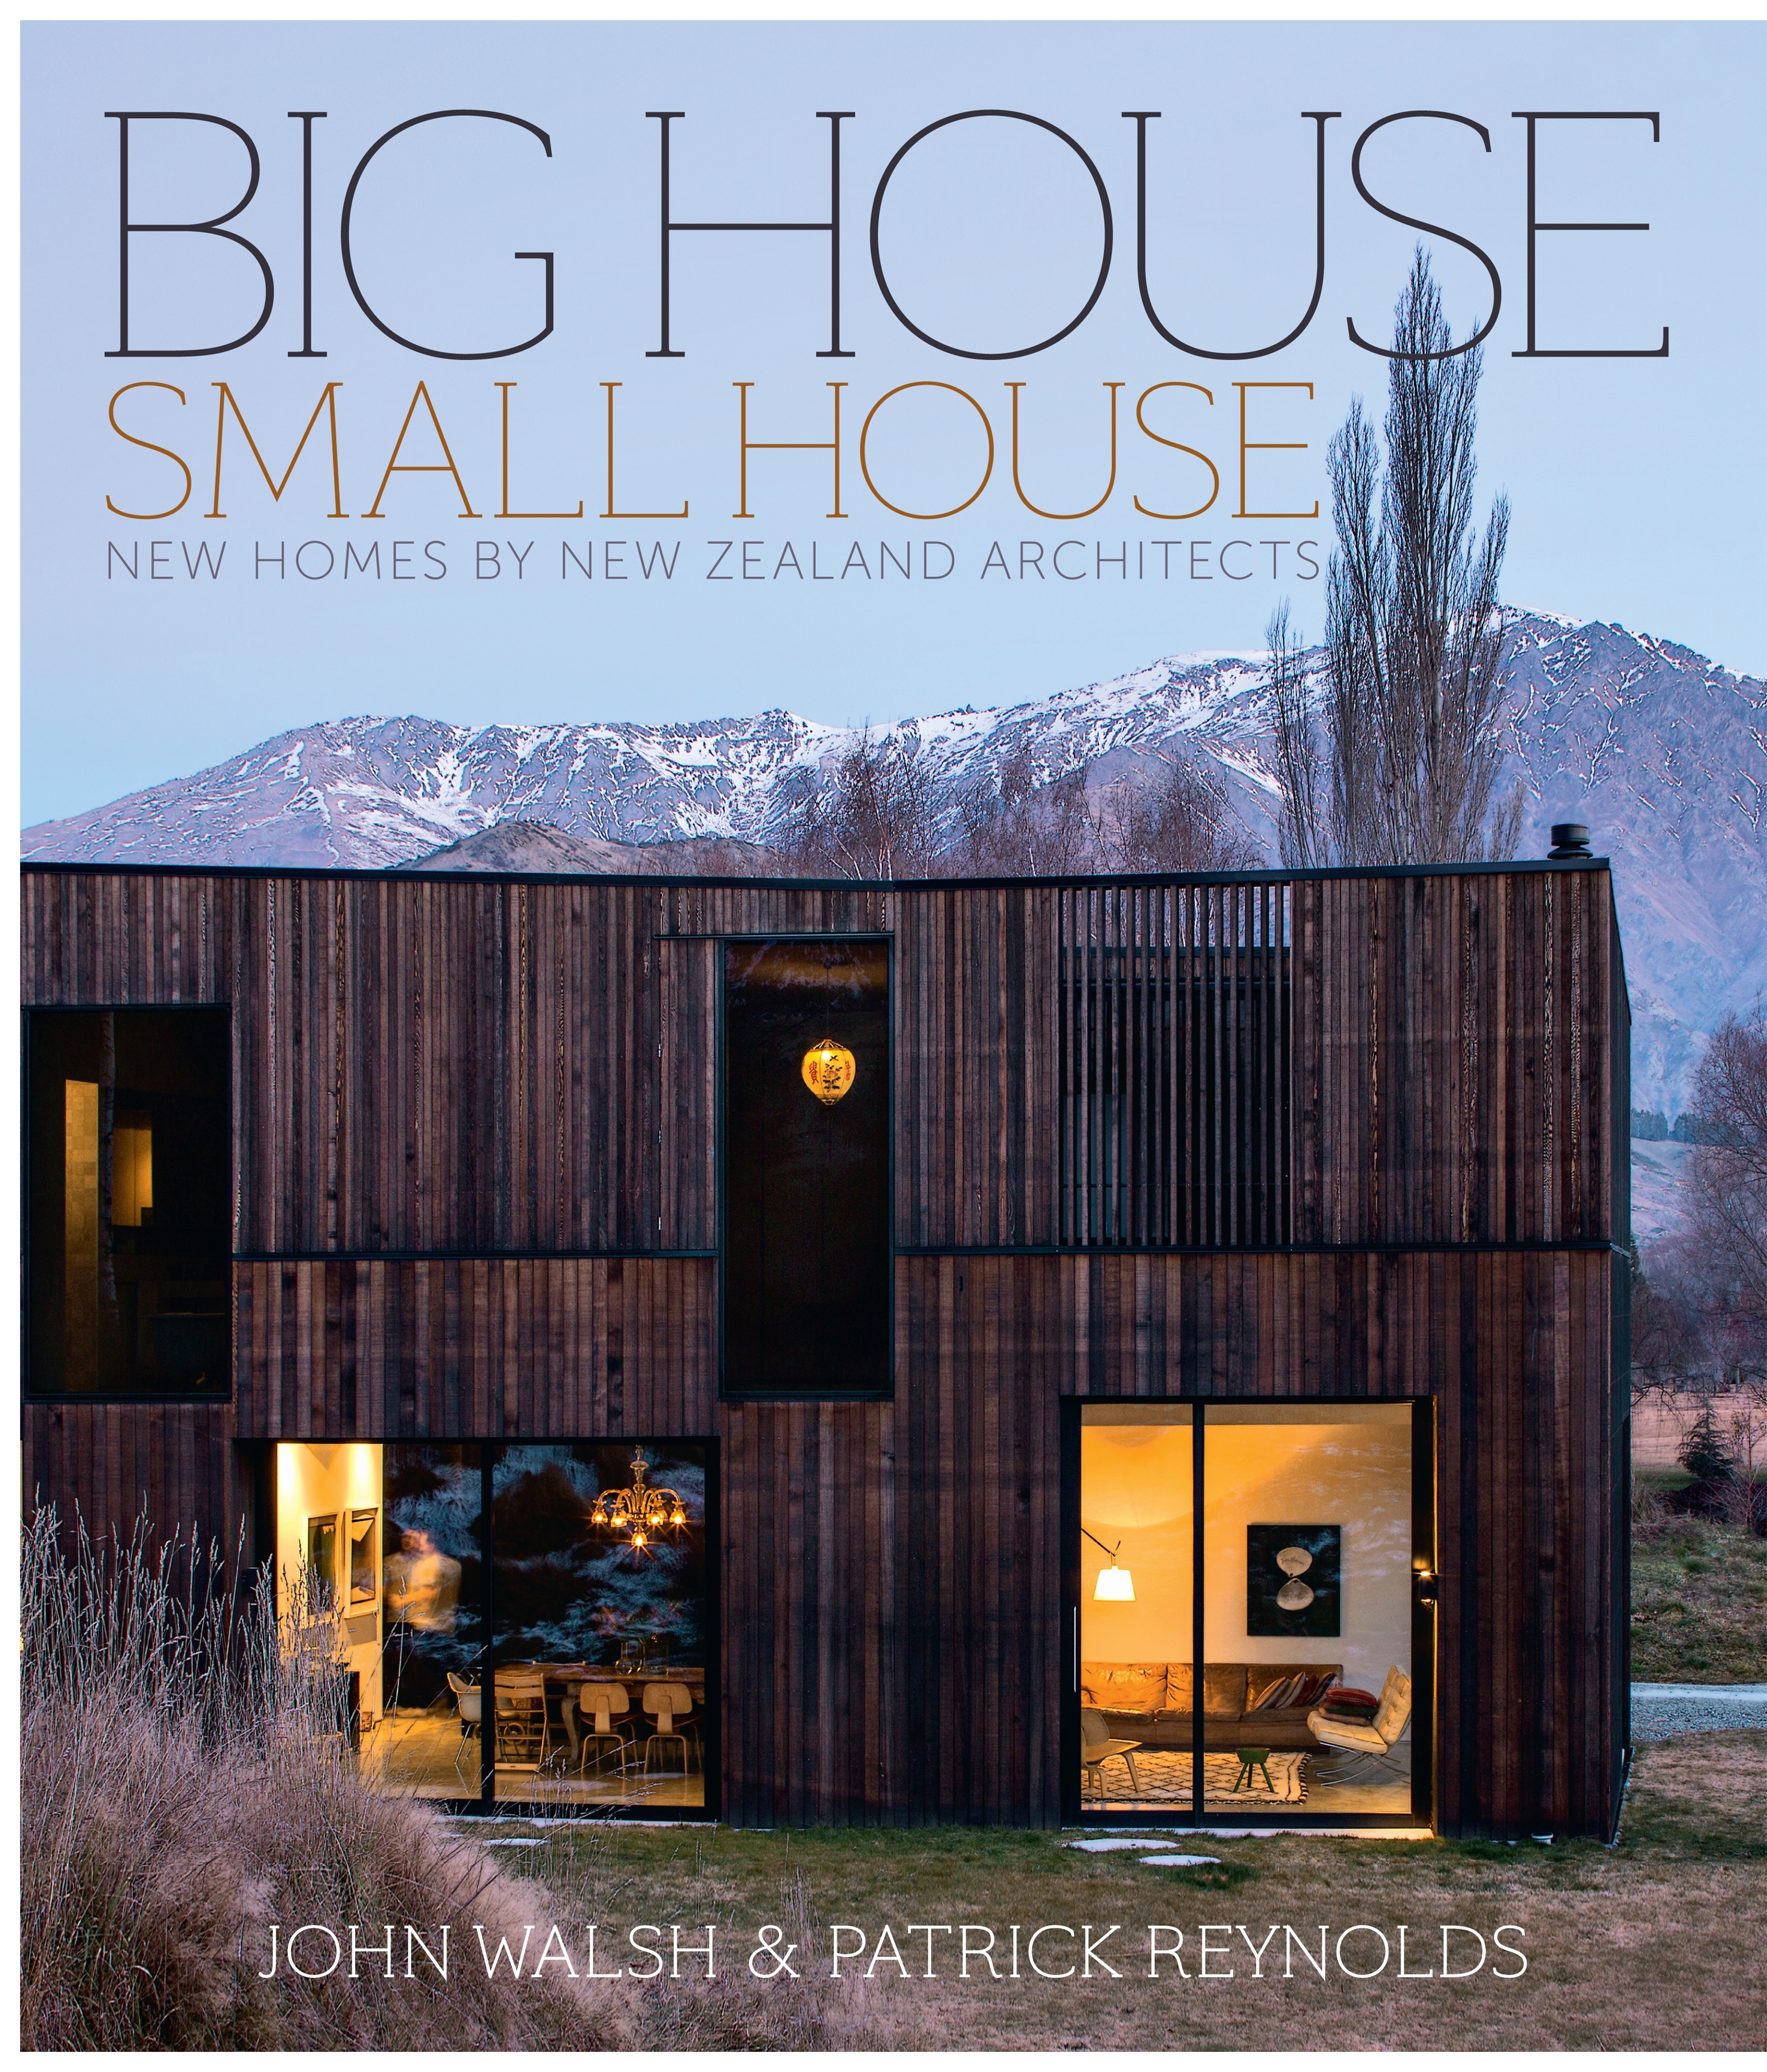 Big house small house by john walsh penguin books new for Books on home design